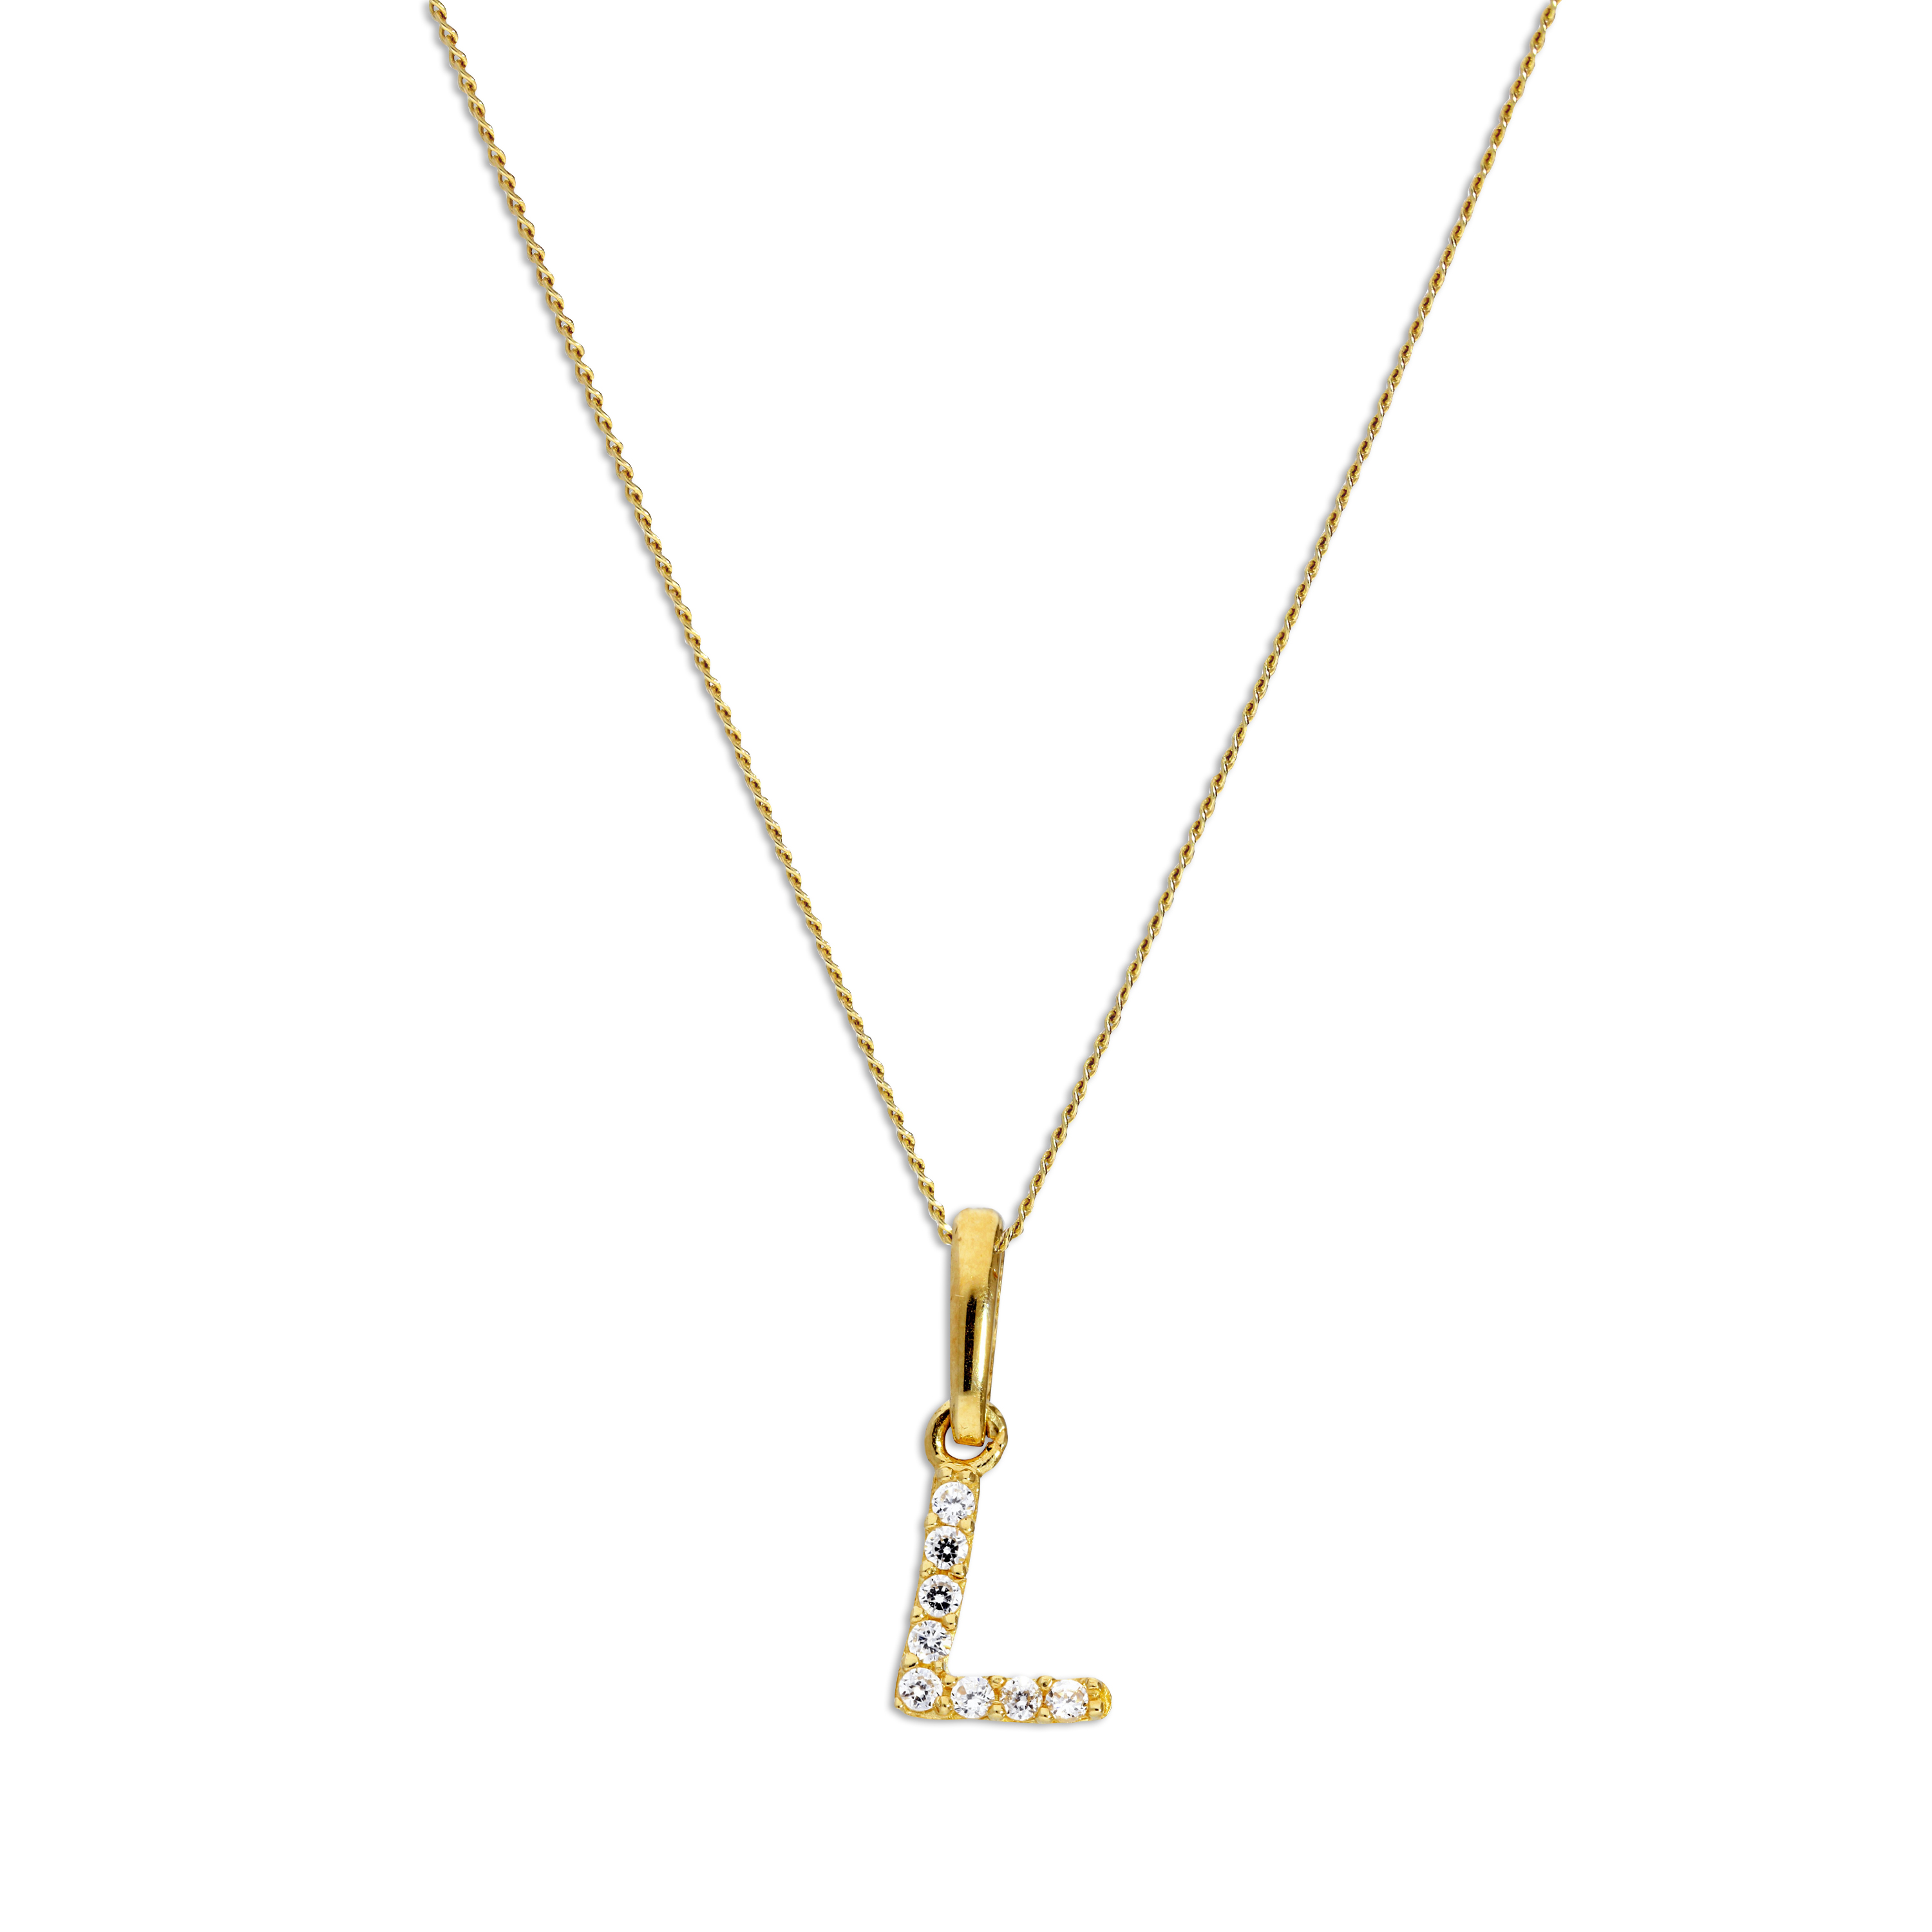 An image of 9ct Gold Clear CZ Crystal Script Alphabet Letter L Necklace 16 20 Inches